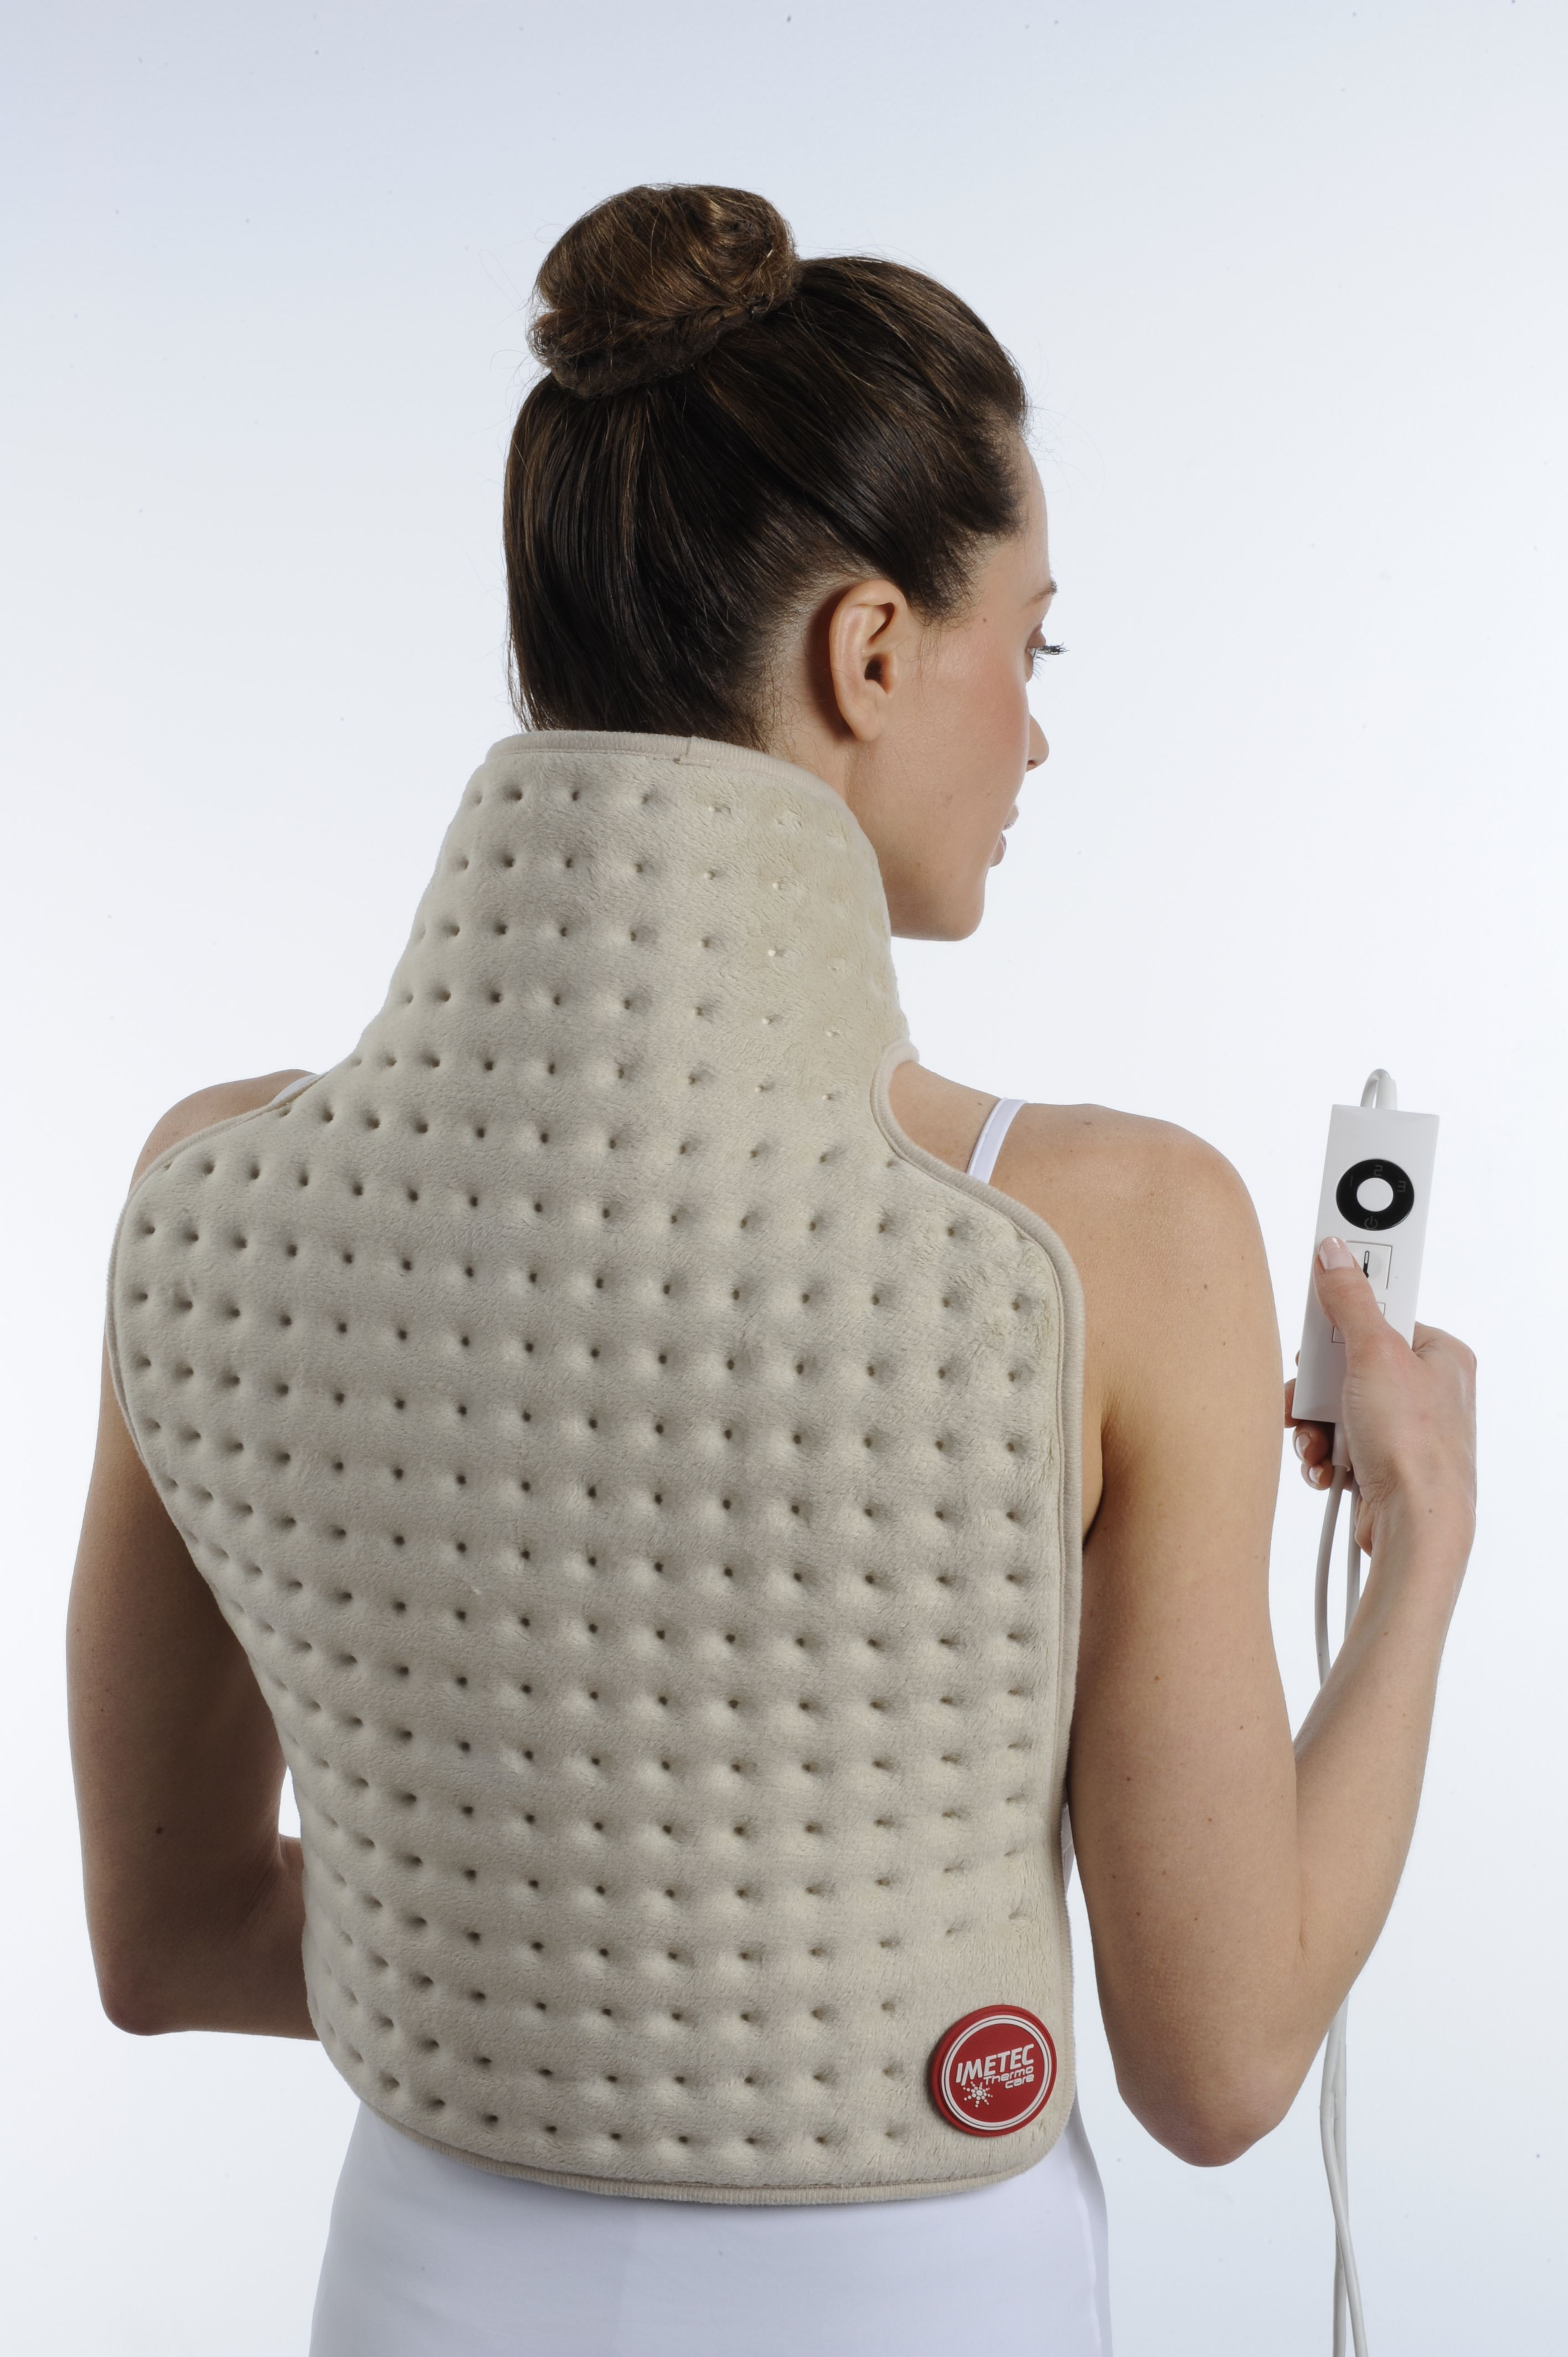 Dreamland Thermo Therapy back and neck heat pad, heat wrap